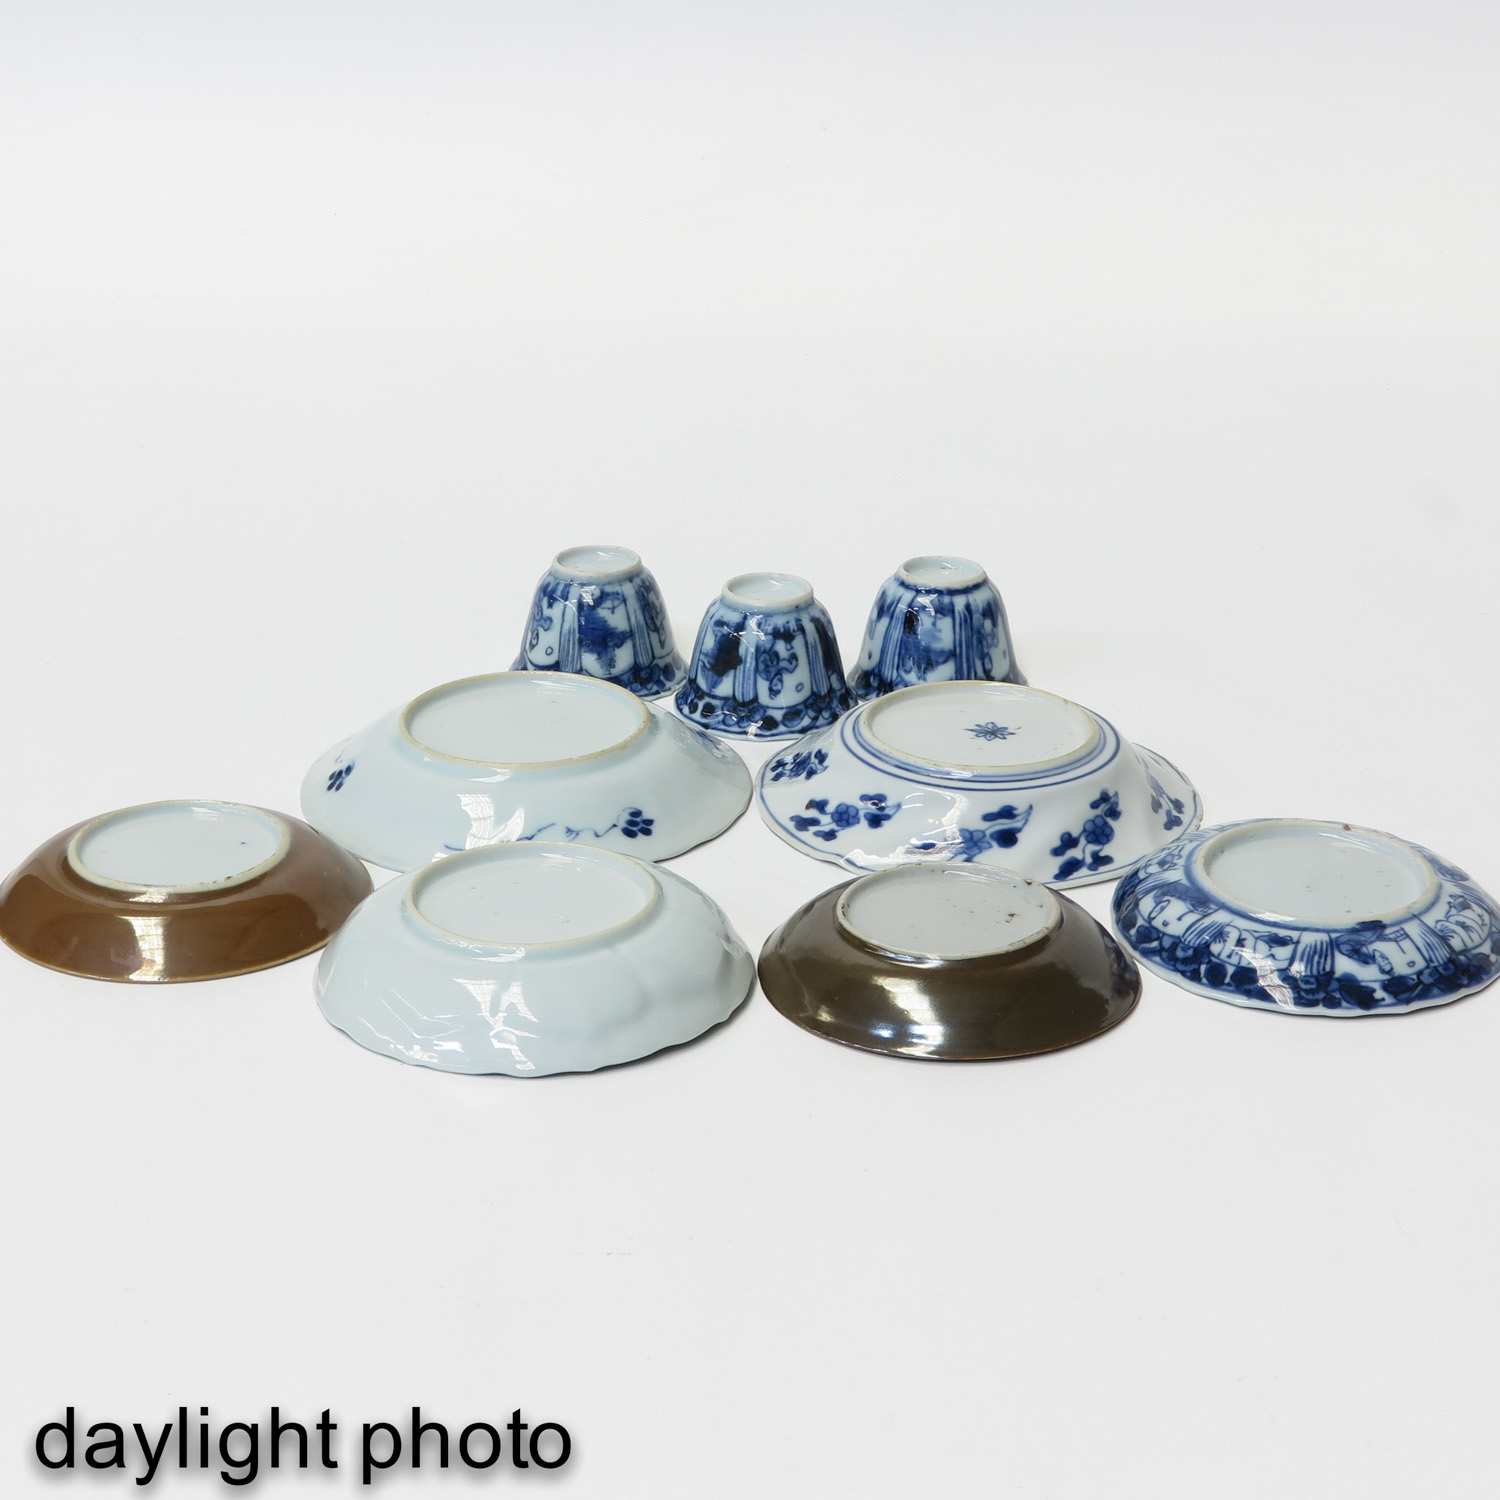 A Collection of Cups and Saucers - Image 4 of 4